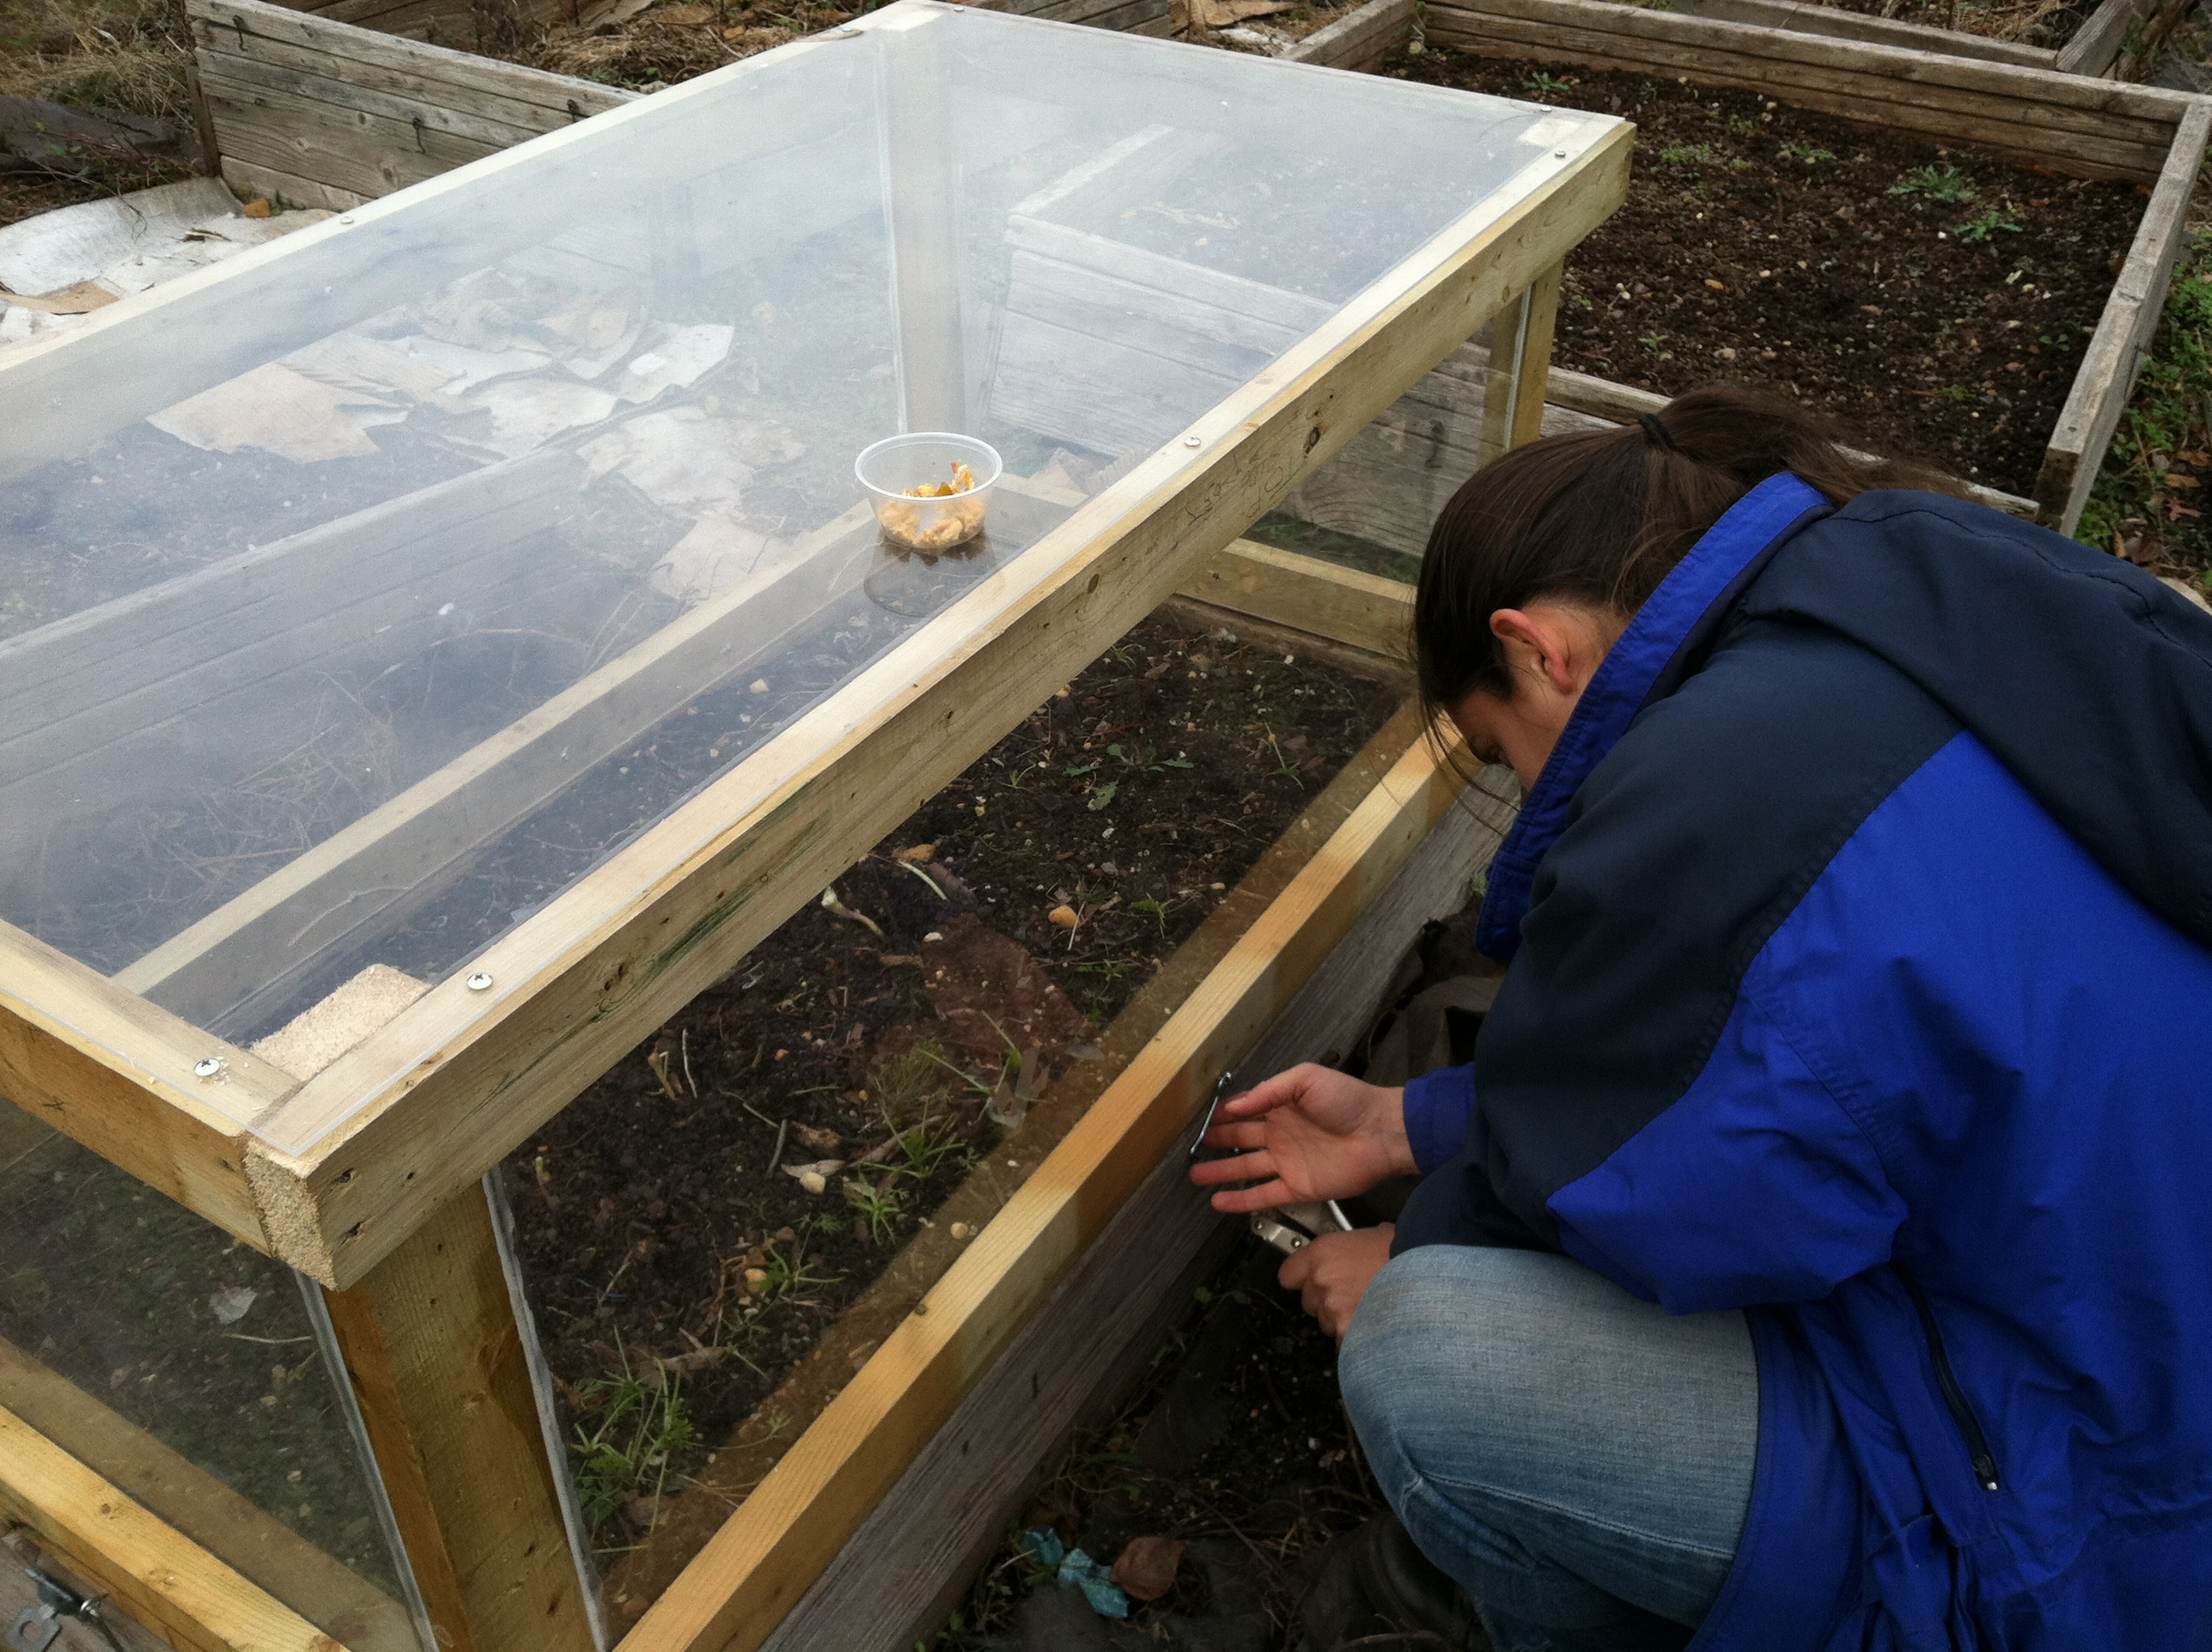 hook and eye latches attach the cold frame to the raised bed and help keep unwanted